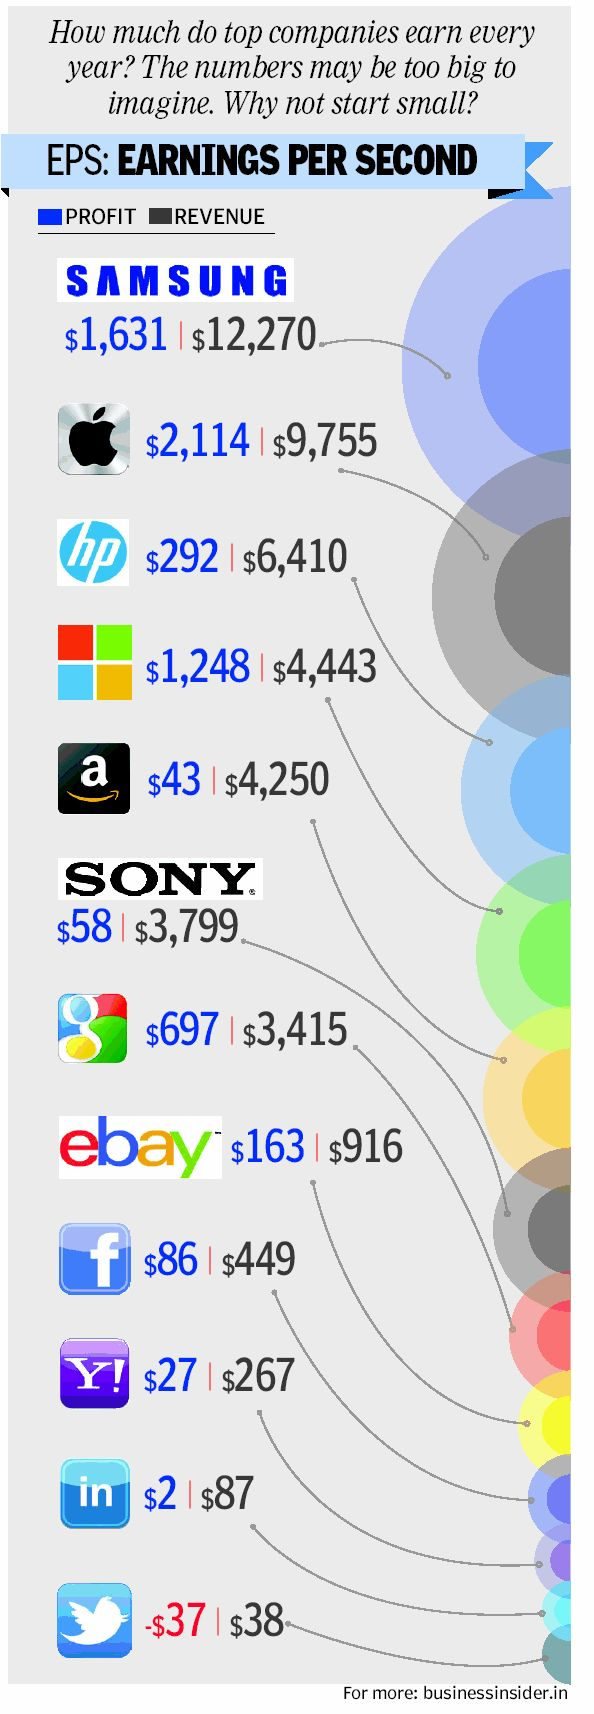 How much do top companies earn per second- Samsung leads $1631(profit) $12270 (revenue) Apple comes 2nd